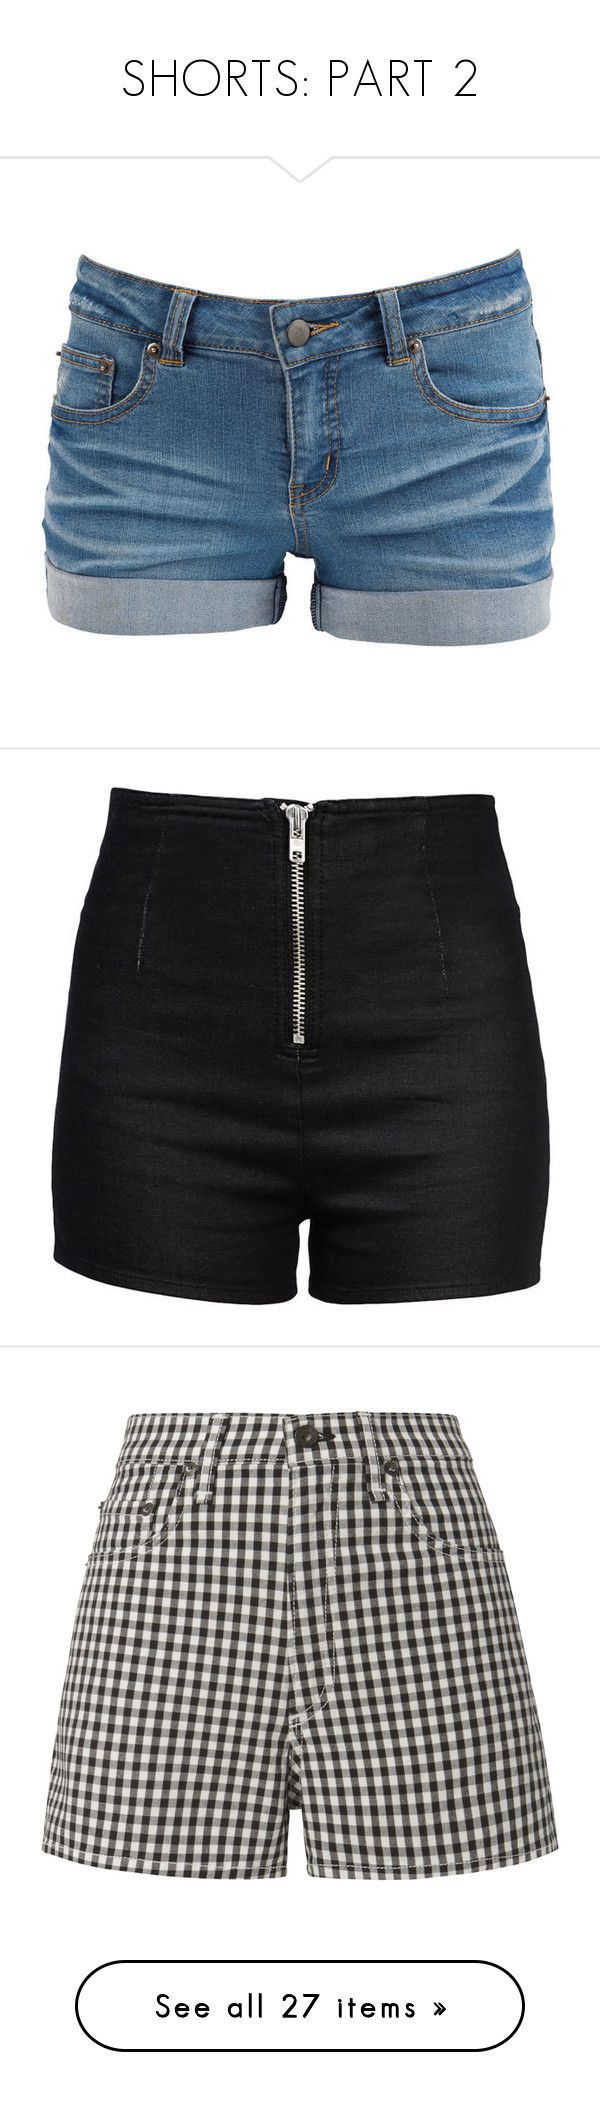 """""""SHORTS: PART 2"""" by fran-peeters ❤ liked on Polyvore featuring shorts, bottoms, pants, short, light blue denim, short shorts, light blue shorts, jean shorts, light blue jean shorts and low waist shorts"""